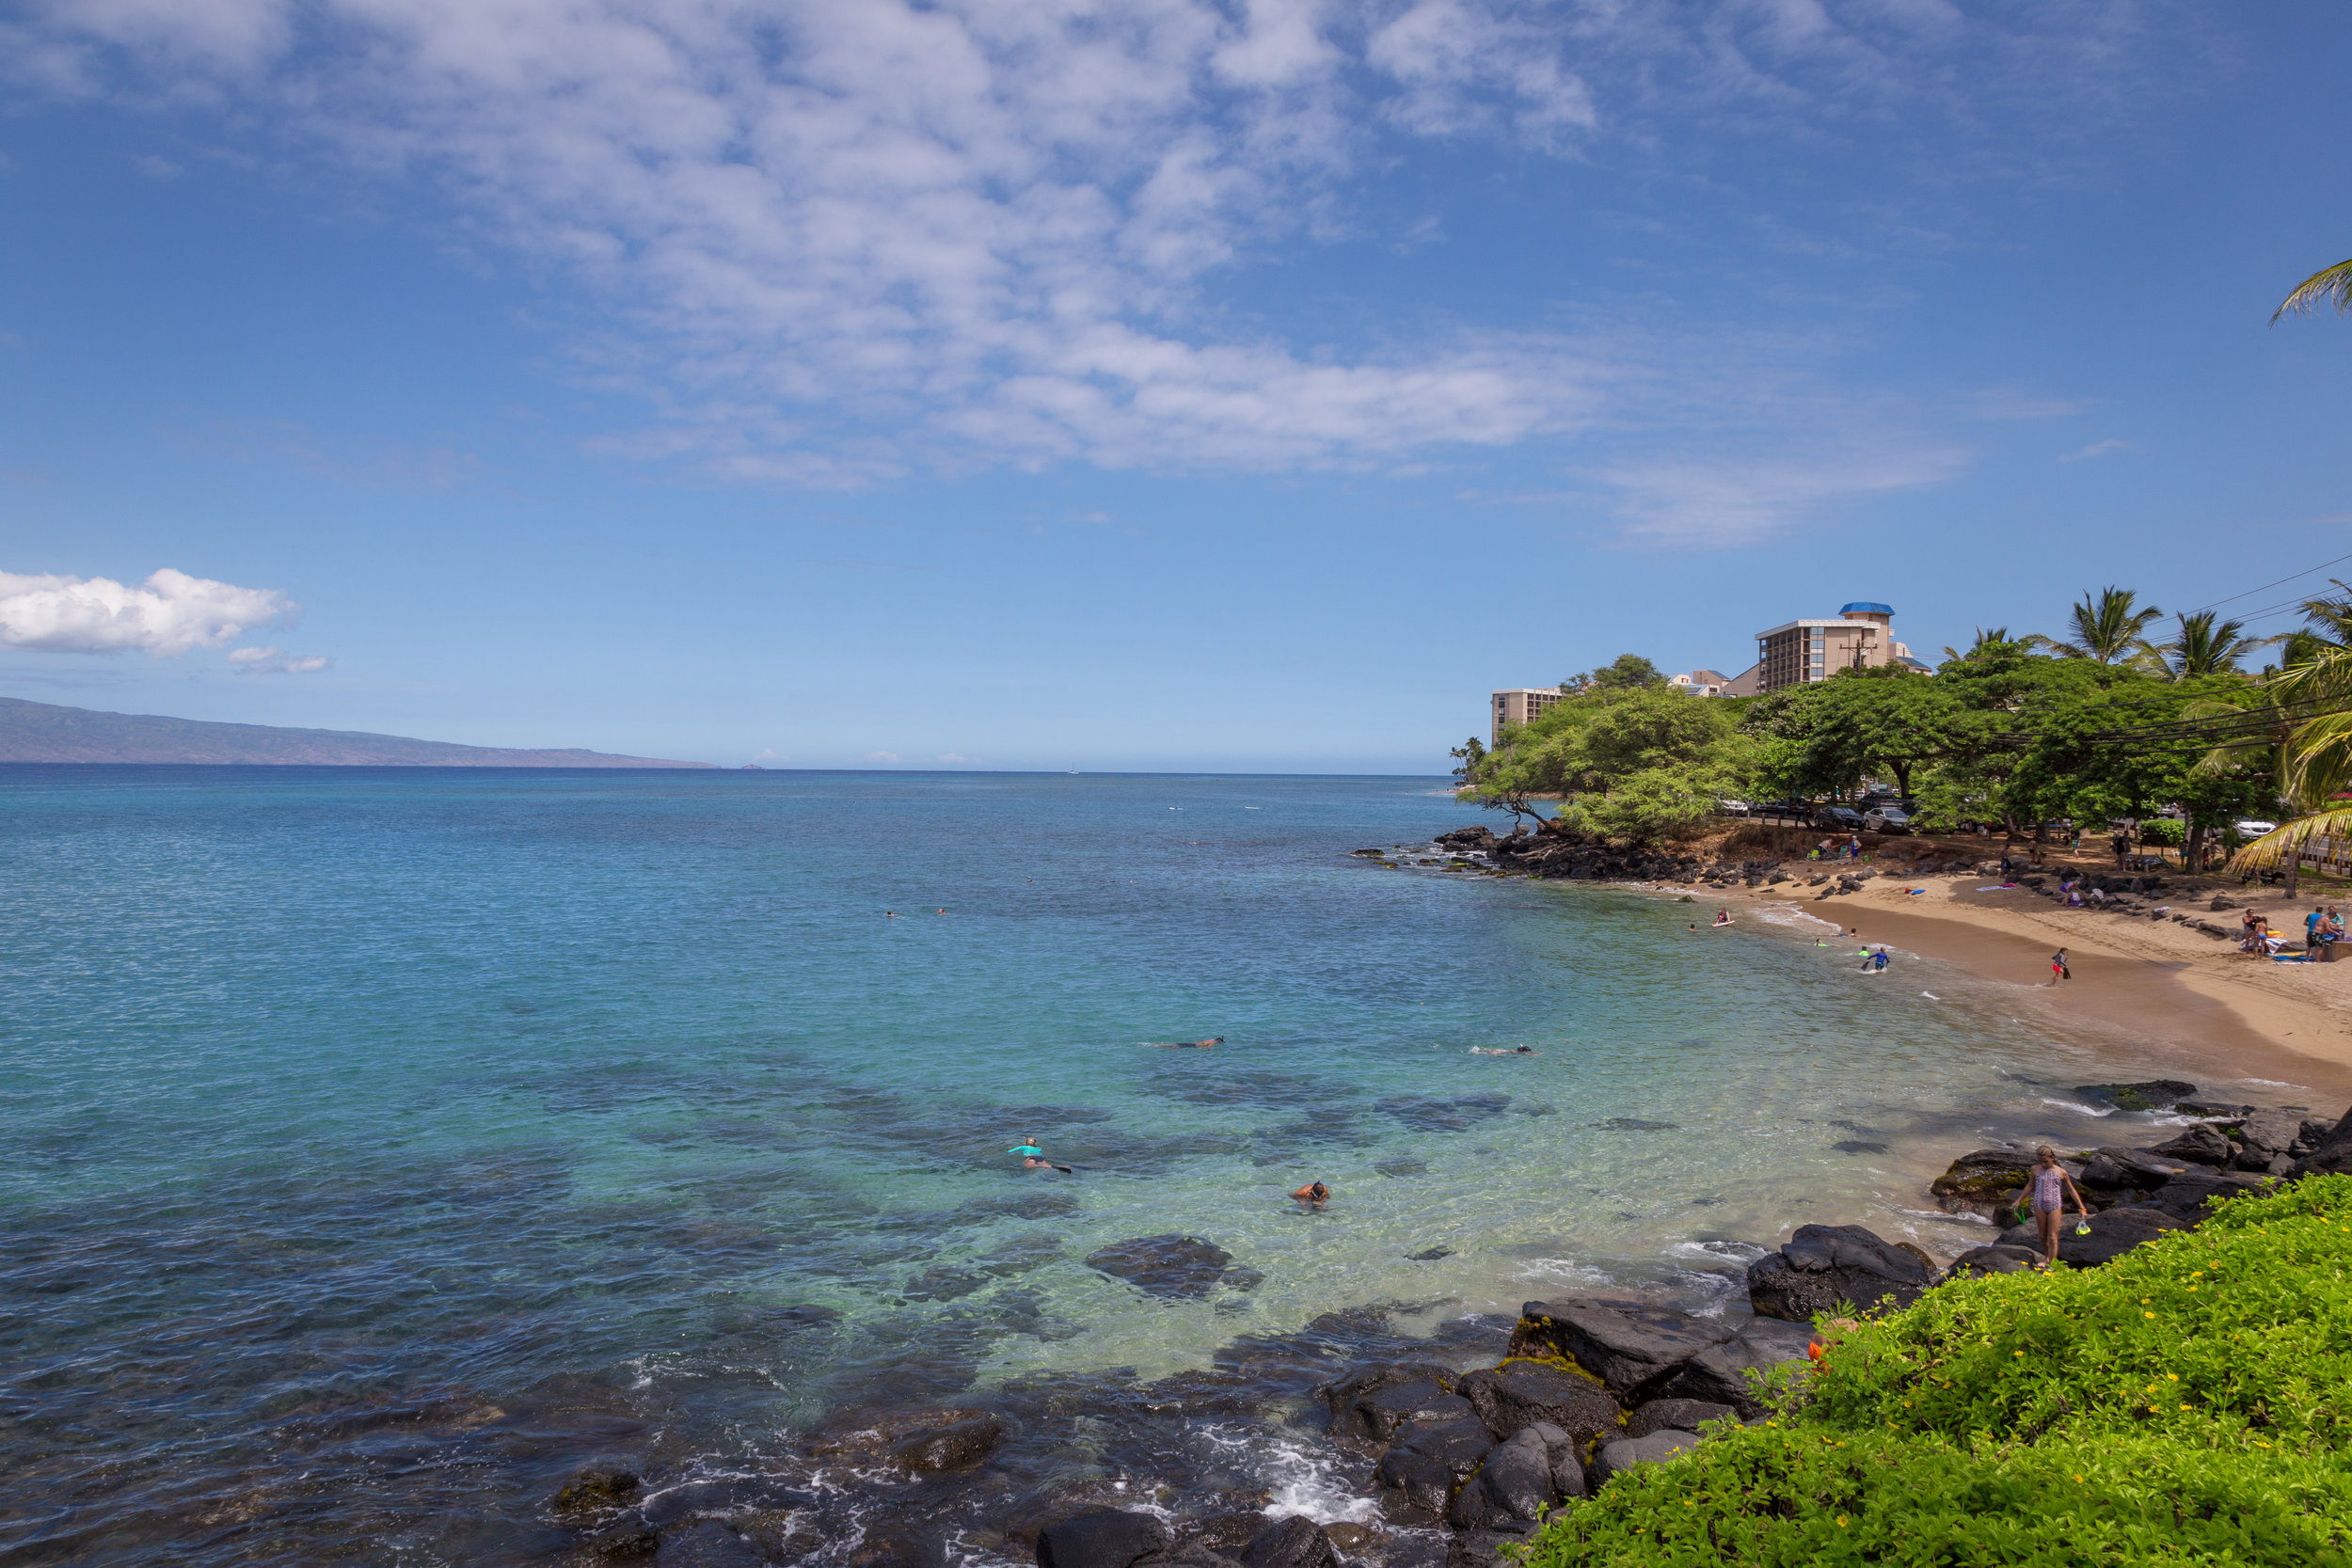 A short walk from The Kahana Villas, Pohaku Park is a charming beach cove that offers excellent snorkeling and good swimming.